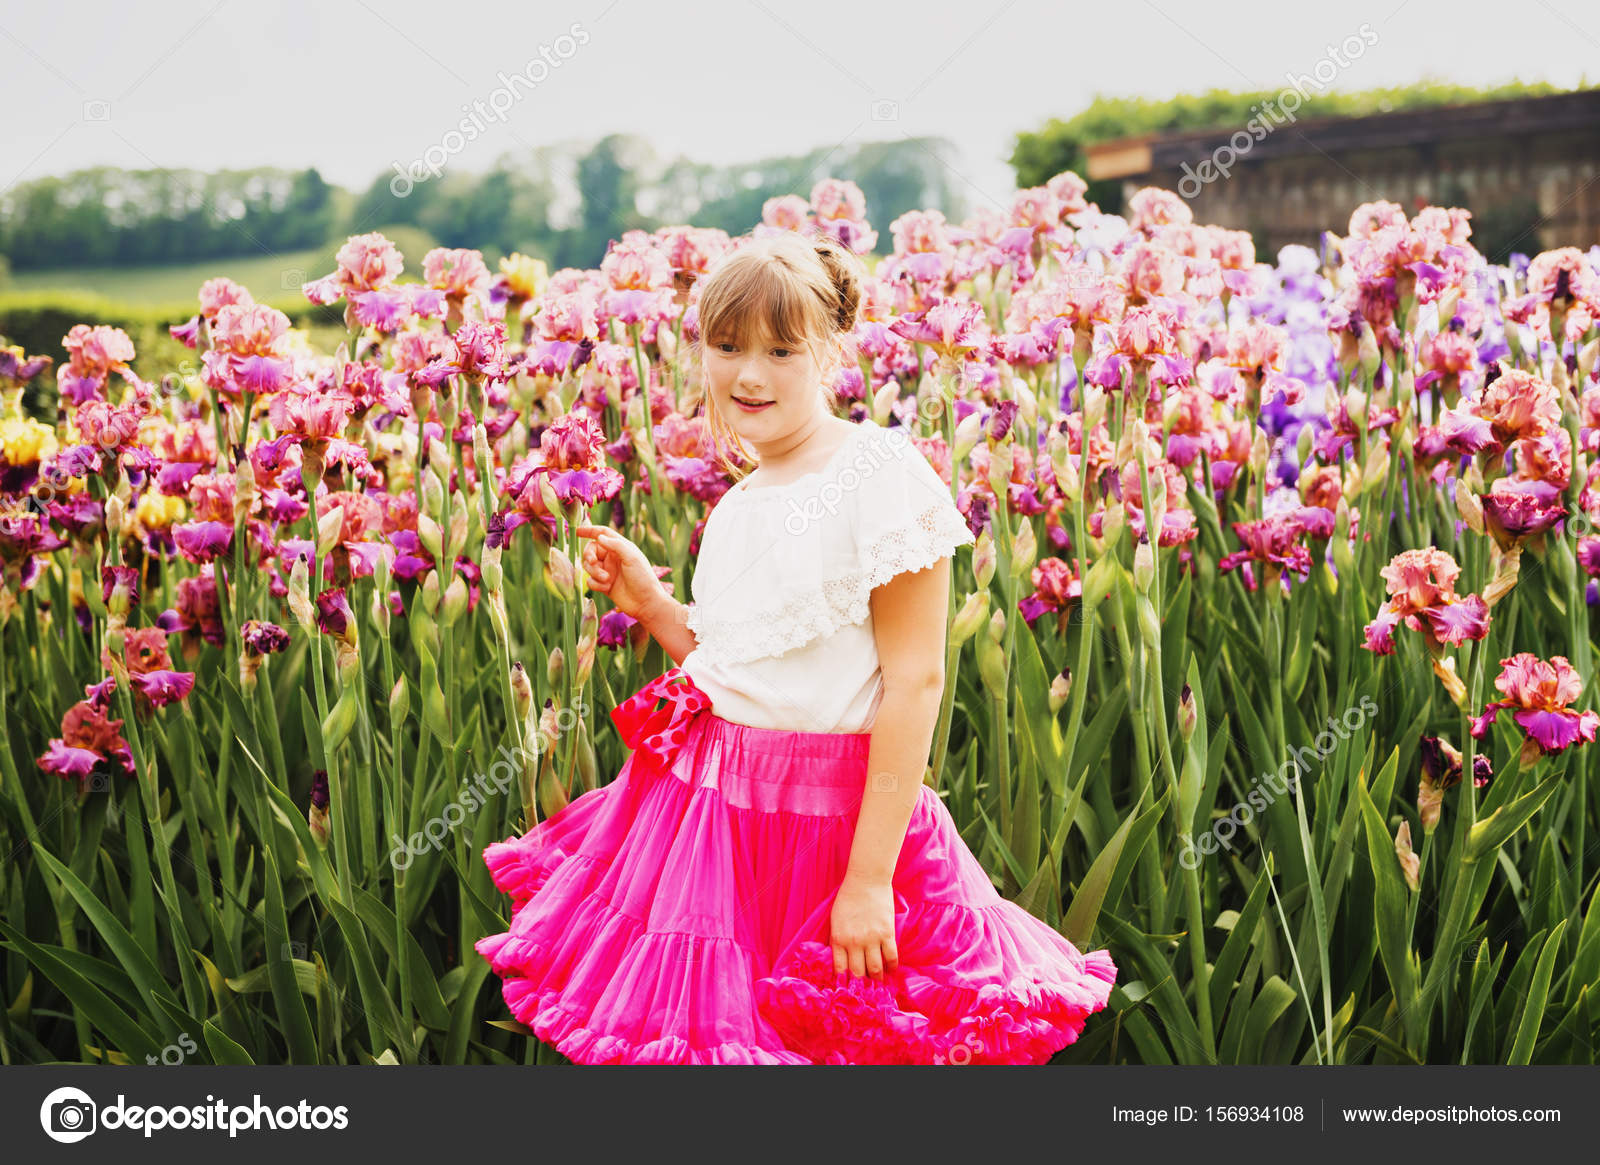 Cute little girl playing in iris flower garden on a nice summer day cute little girl playing in iris flower garden on a nice summer day wearing white shirt and bright pink tutu skirt photo by annanahabed izmirmasajfo Gallery